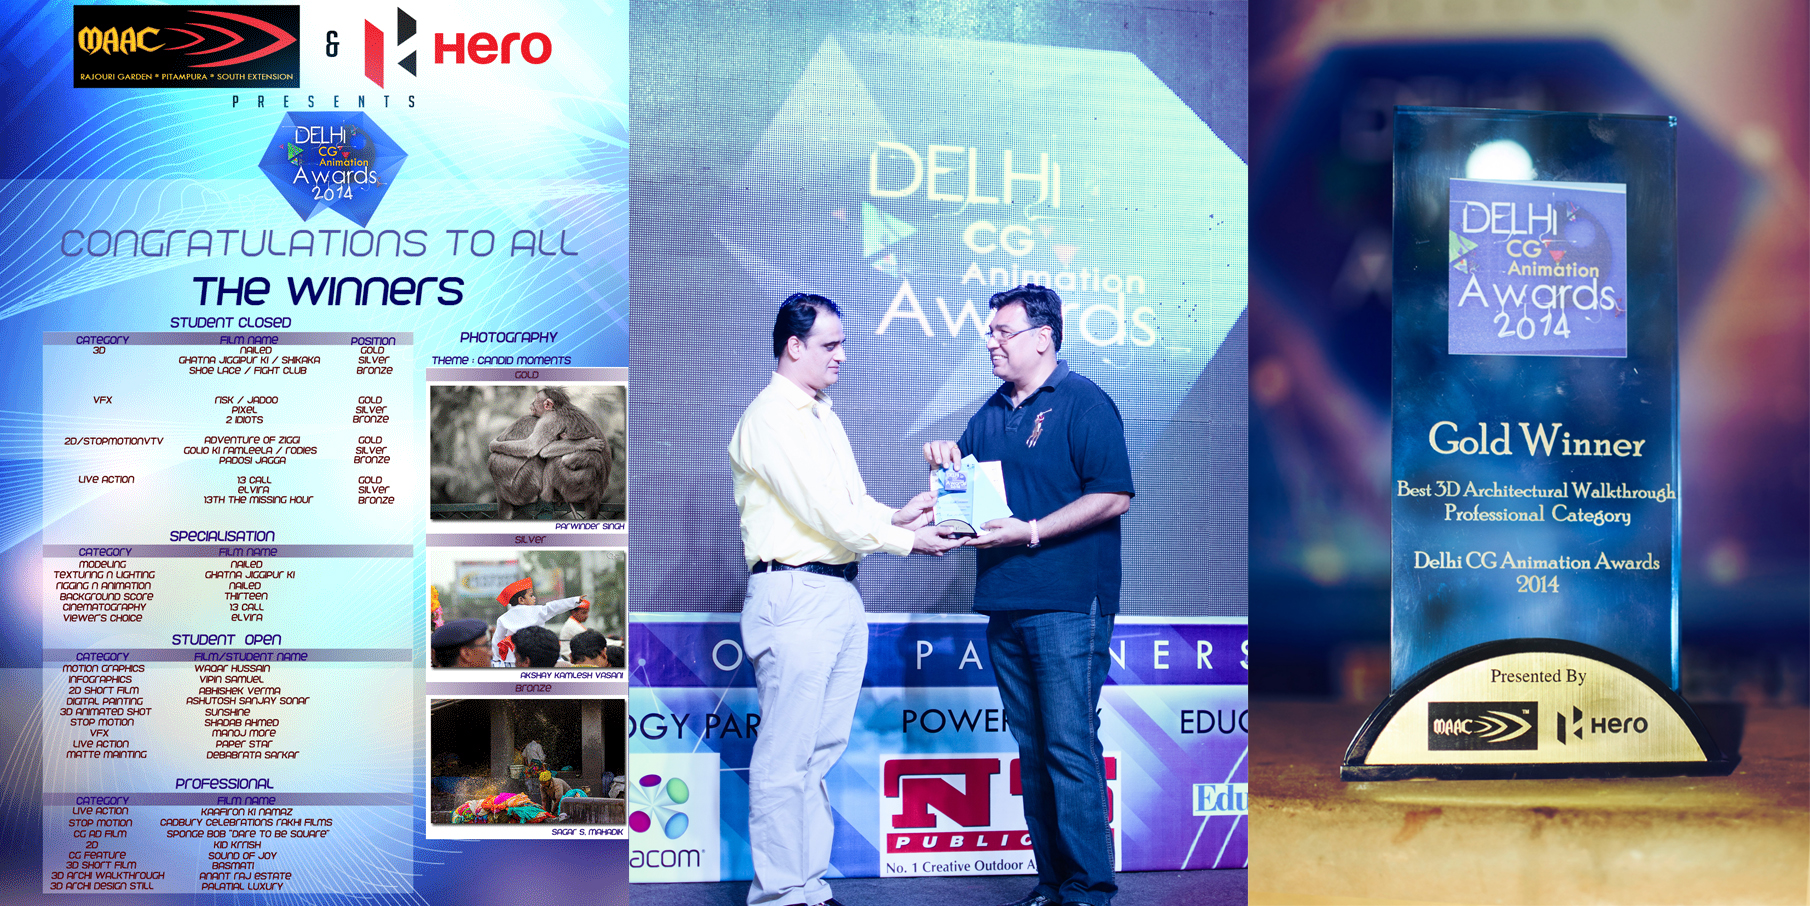 Anant Raj Estates at the Delhi CG Animation Awards 2014